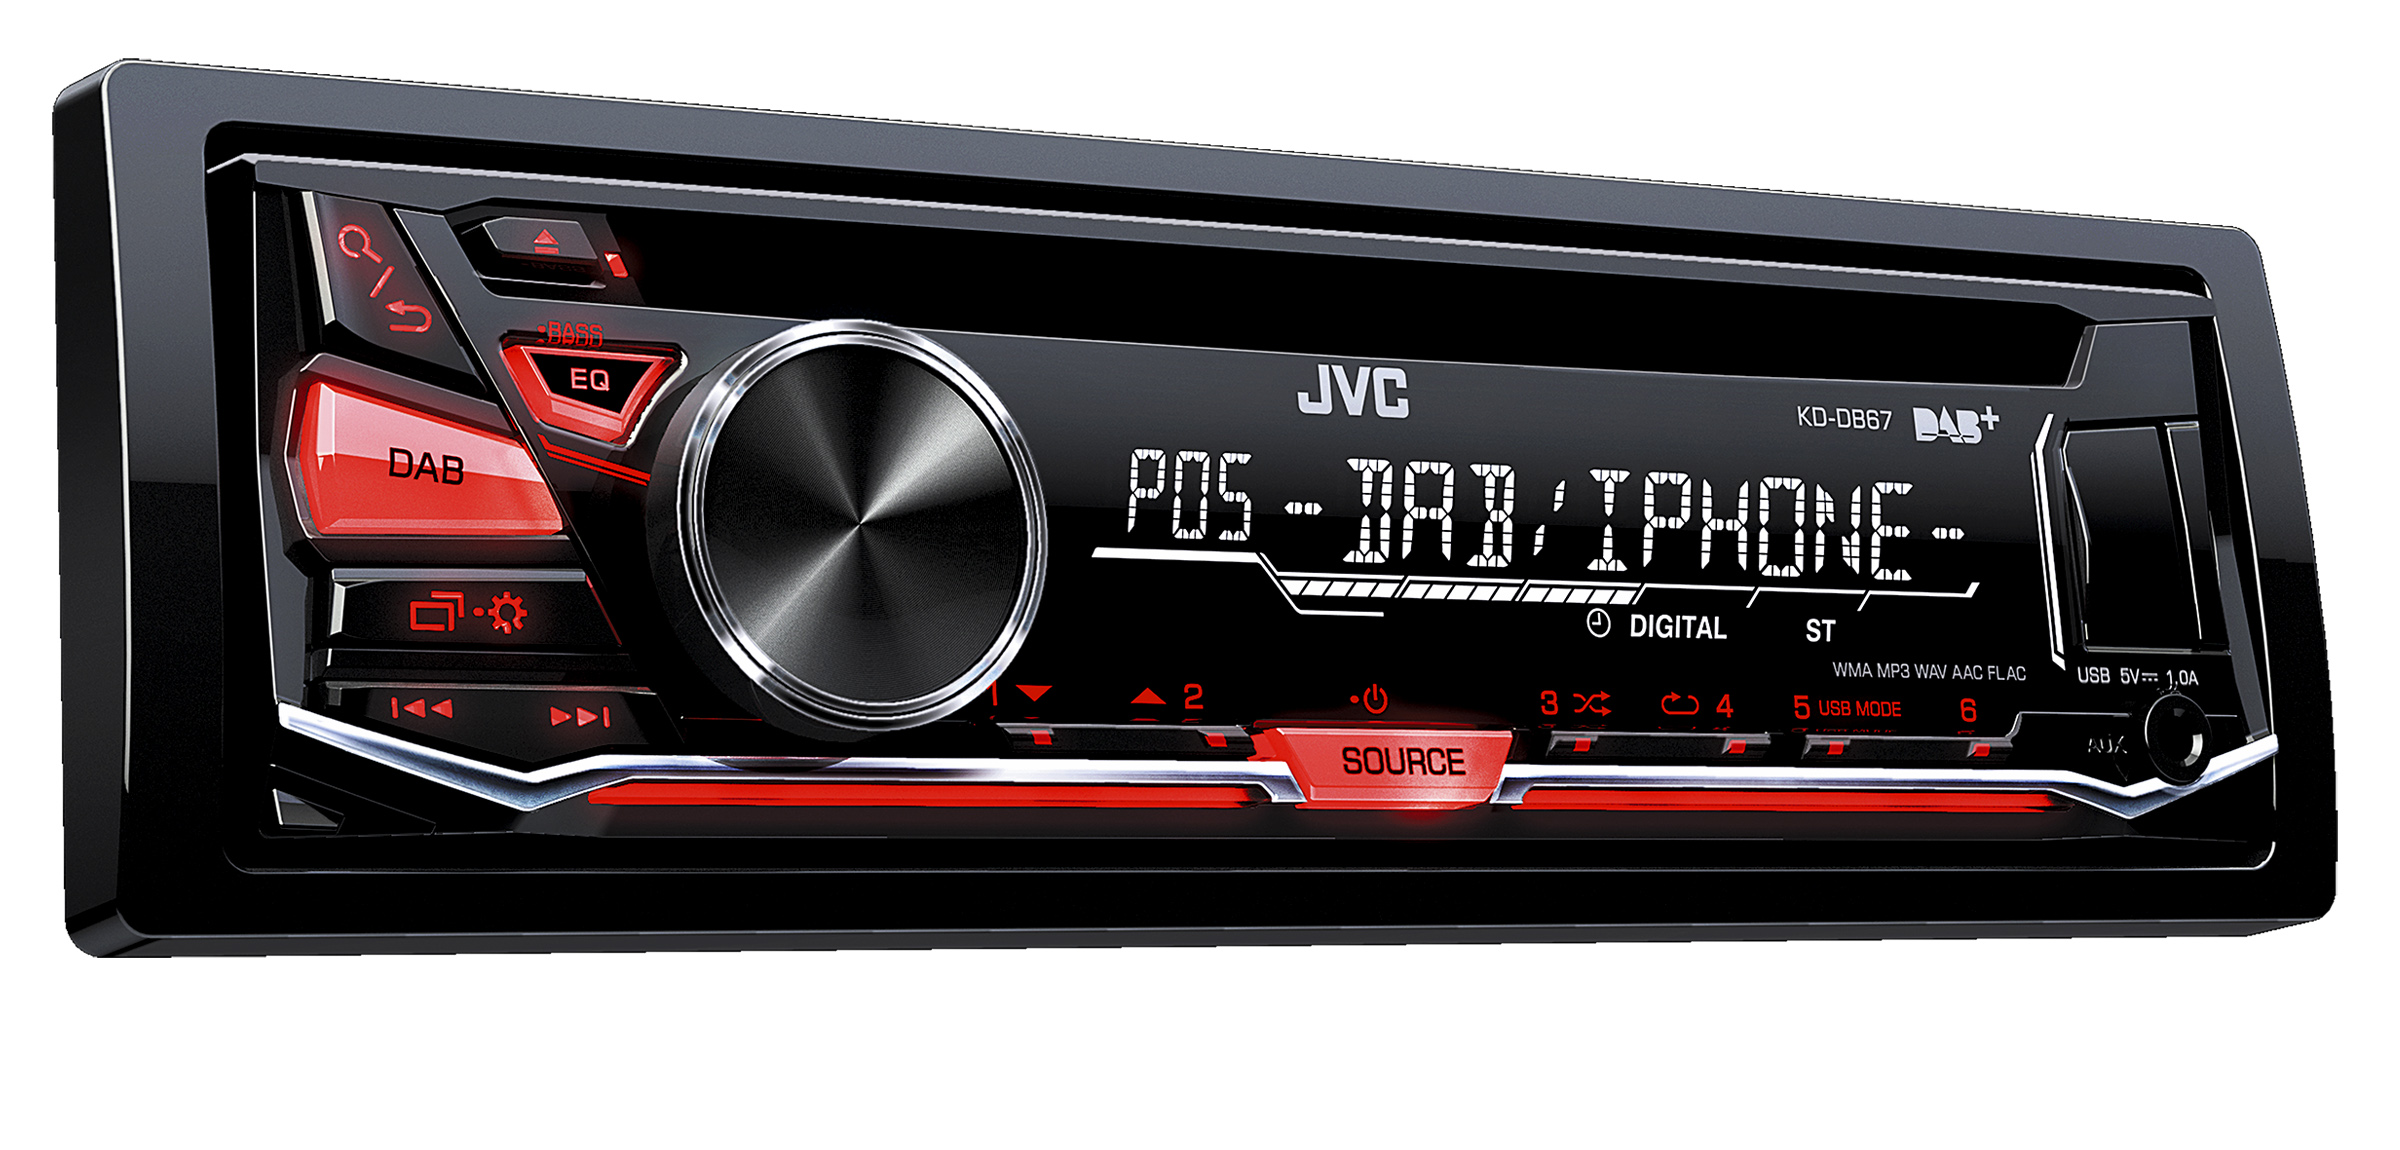 JVC KD-DB65 Receiver Drivers Update